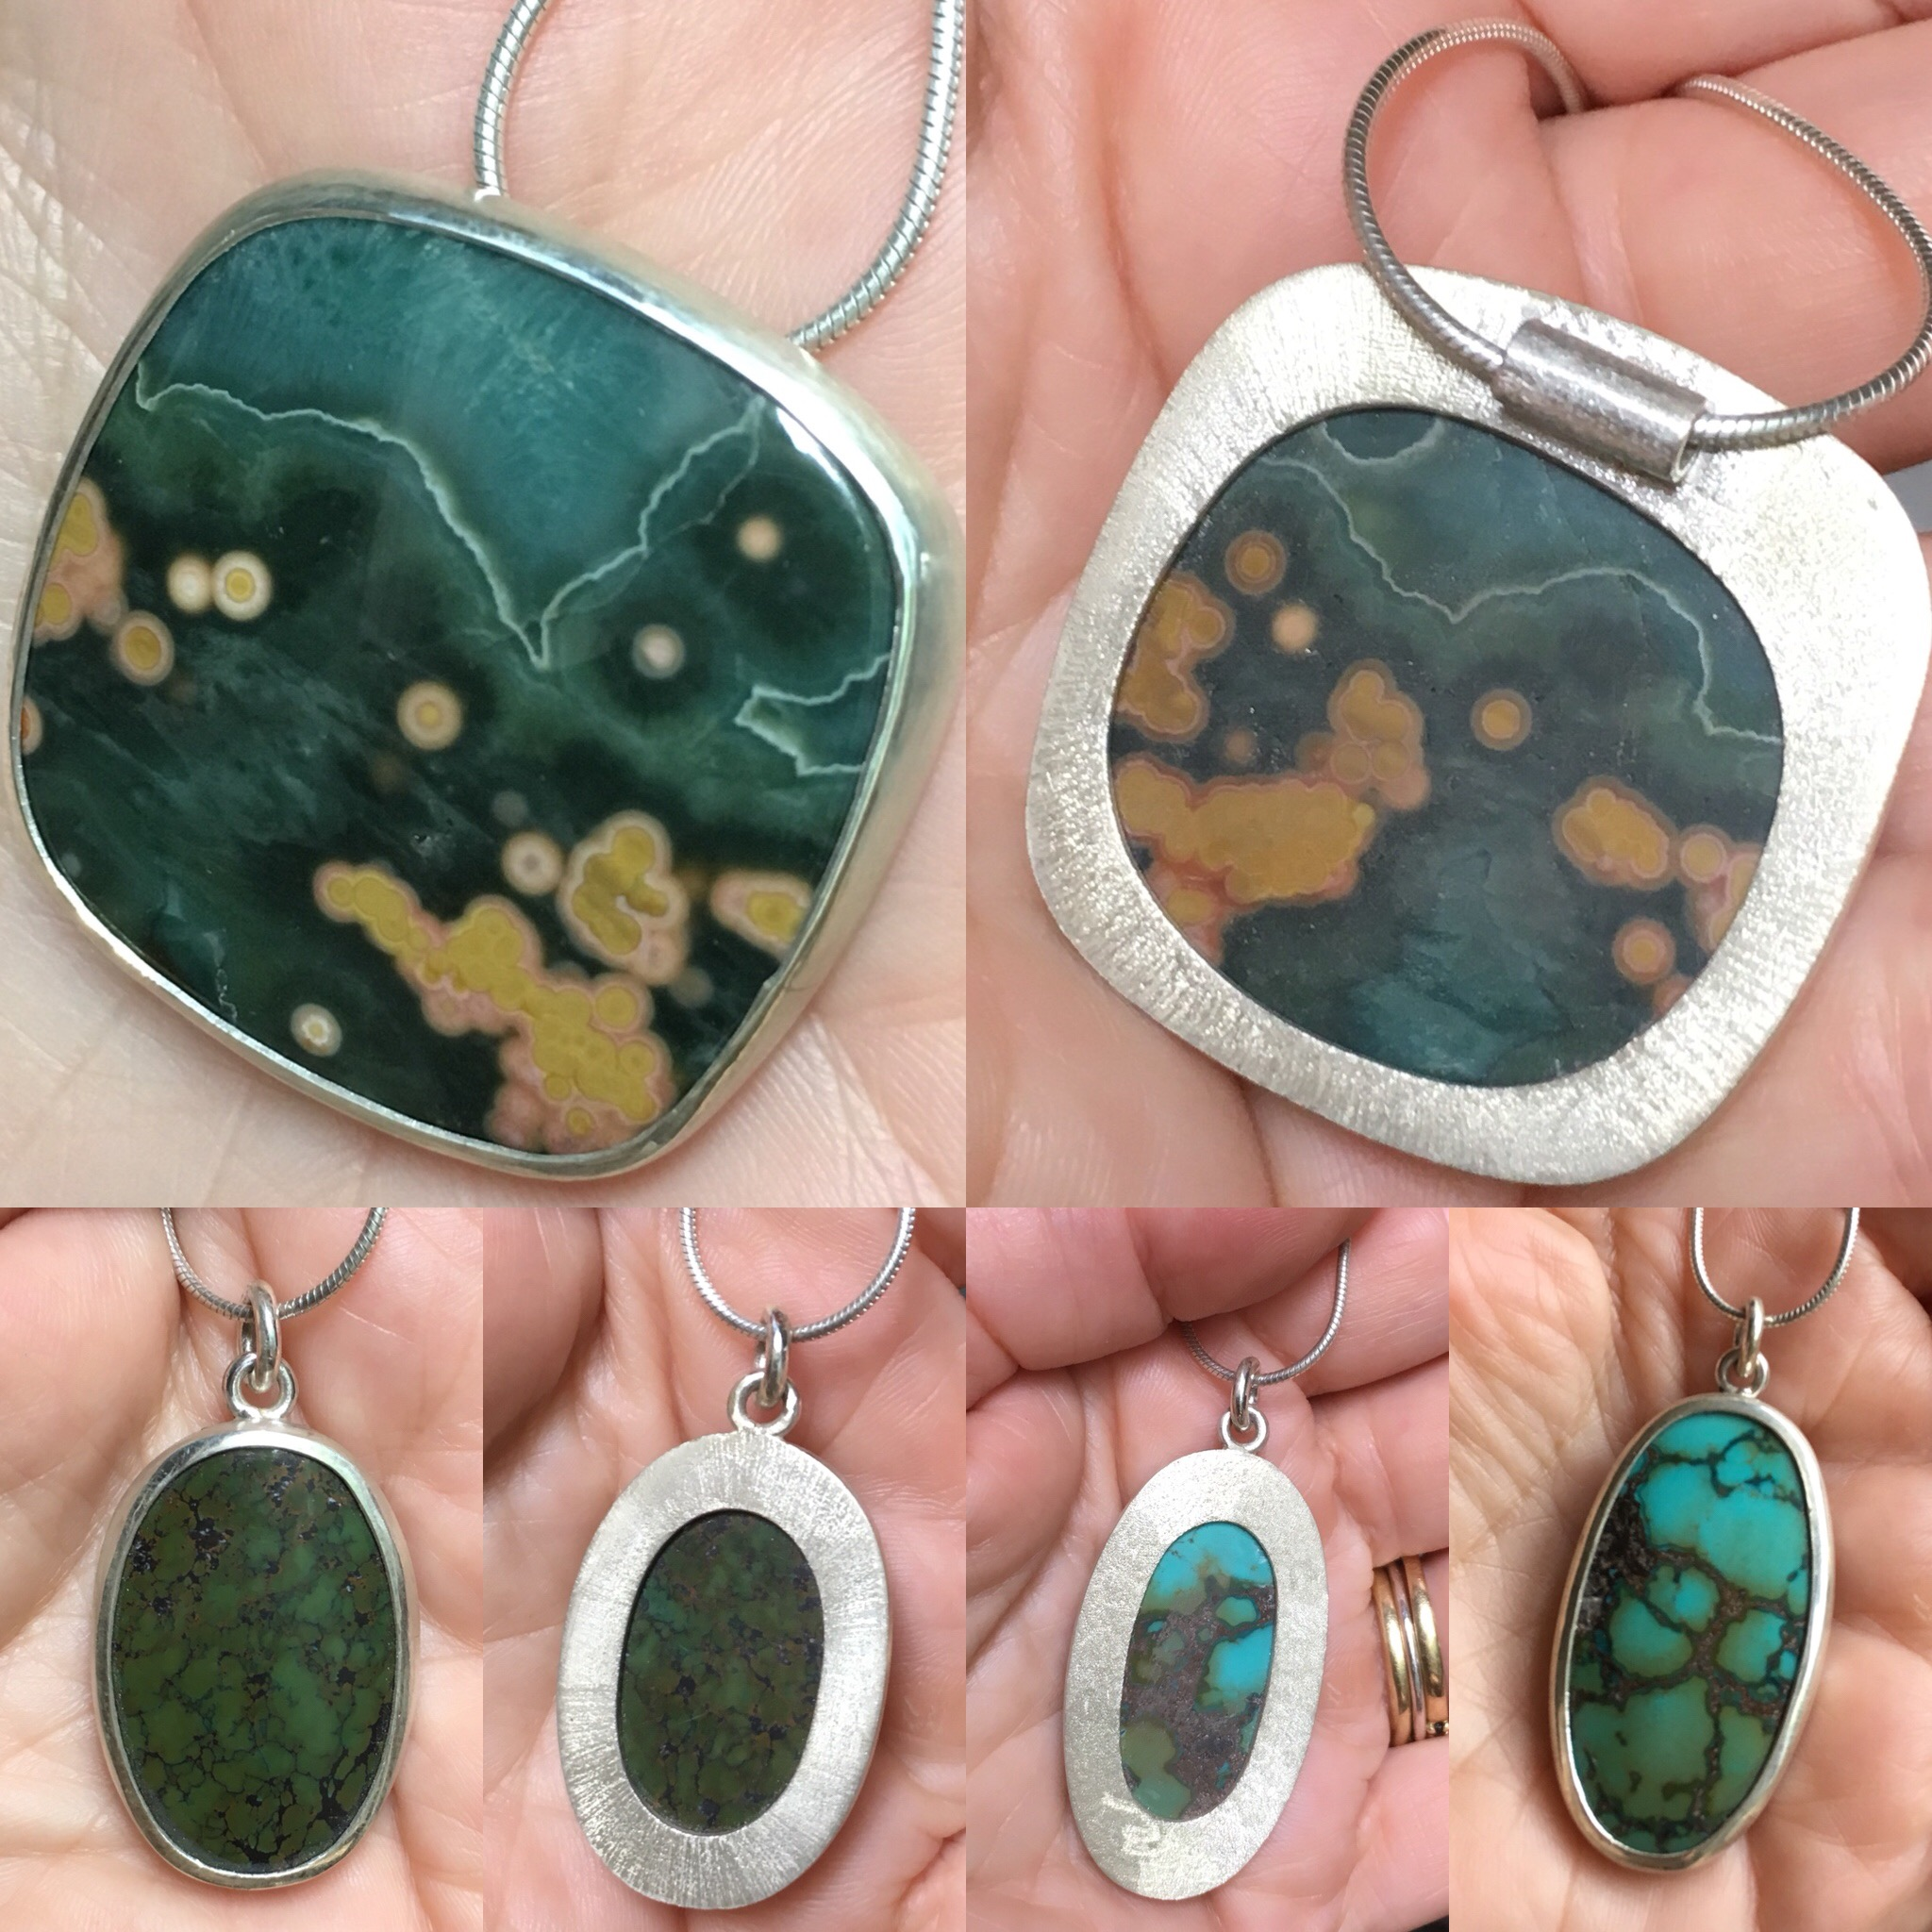 Pendant Challenge, Round # 2: silver, jasper and Chinese turquoise.